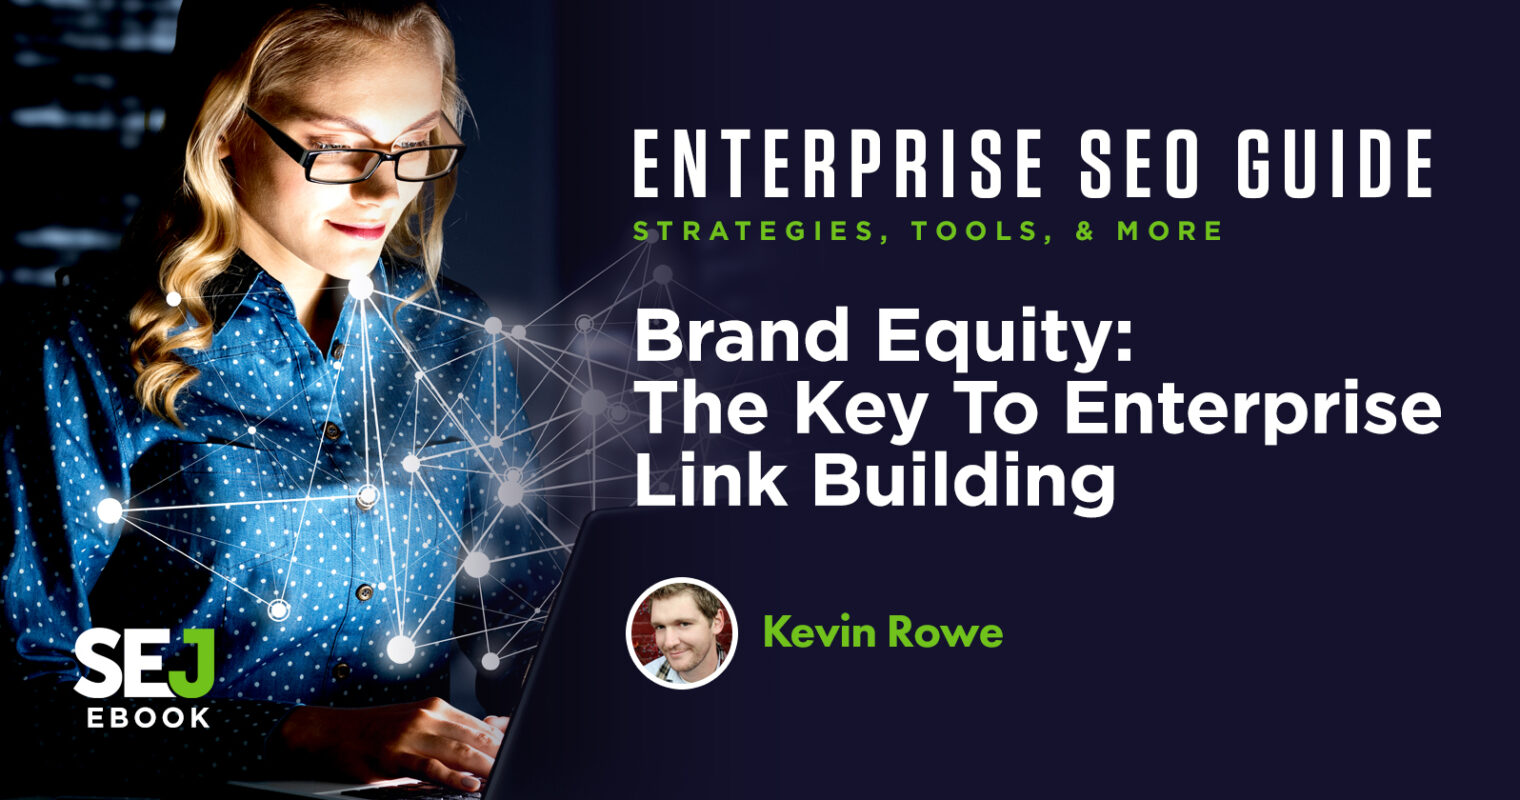 Brand Equity: The Key to Enterprise Link Building